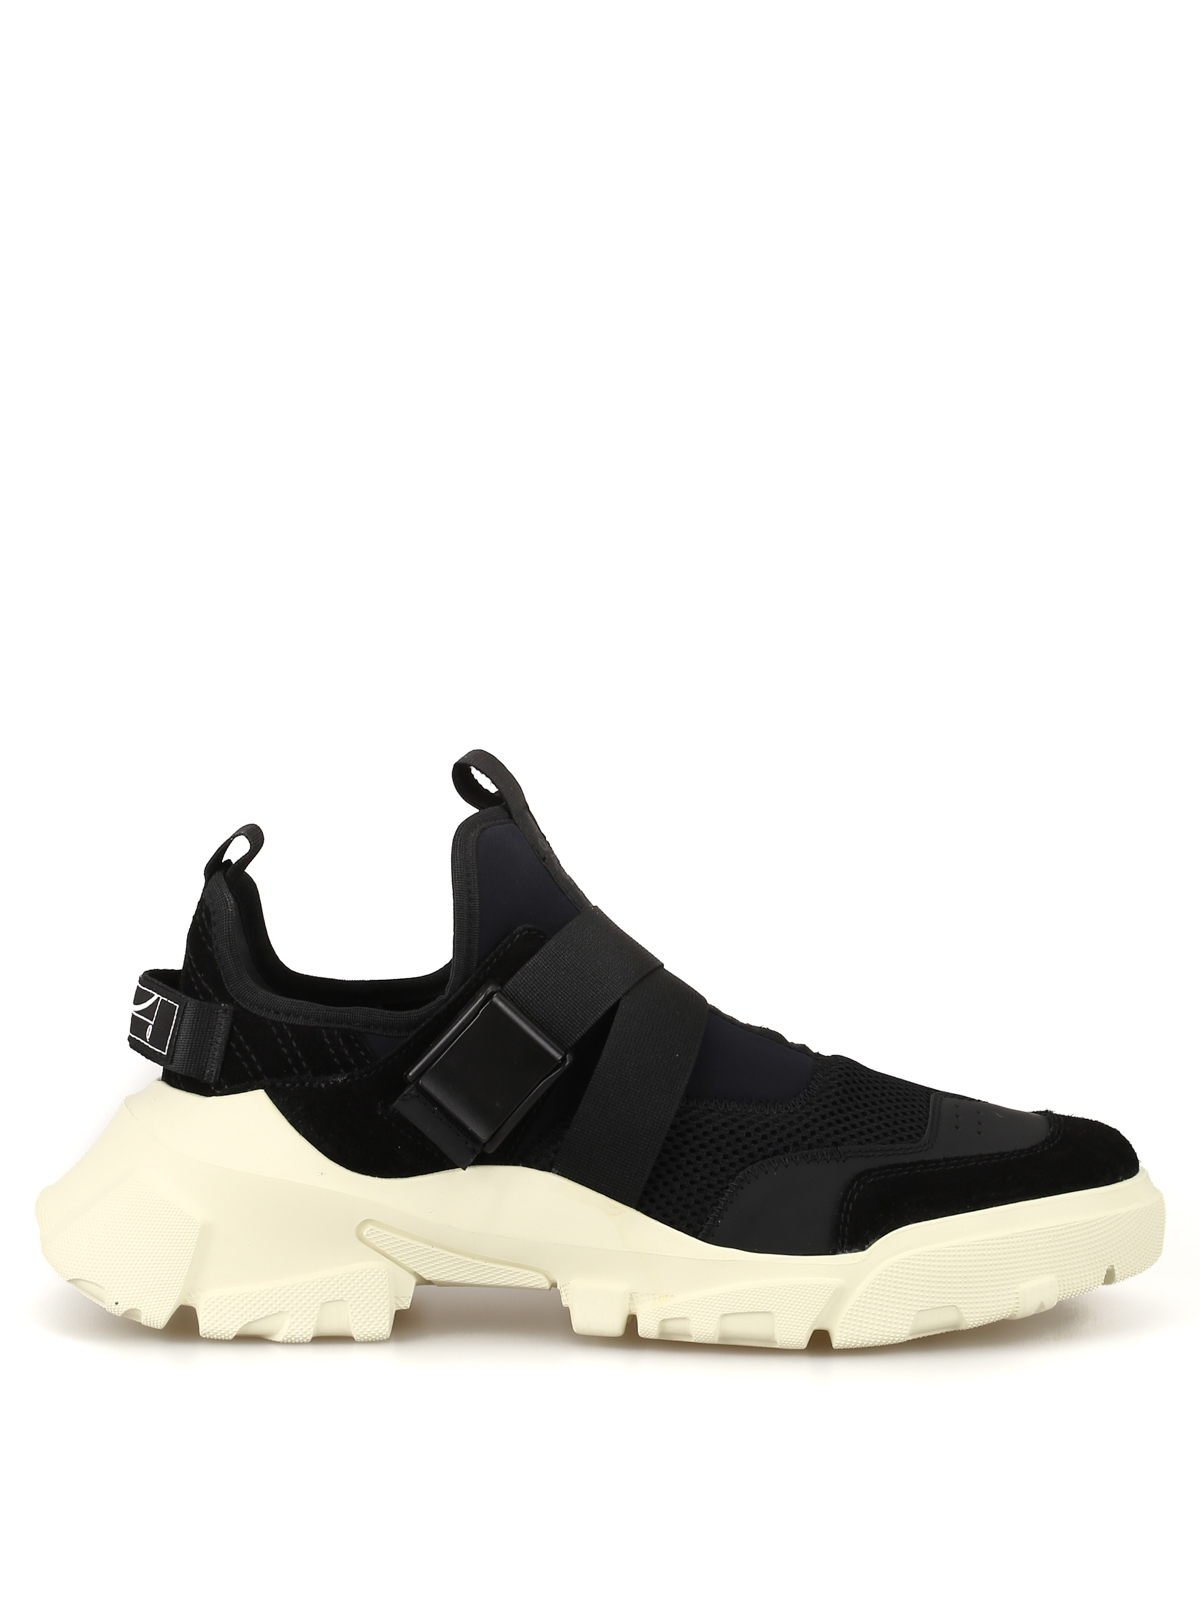 Mcq By Alexander Mcqueen Orbyt black sneakers